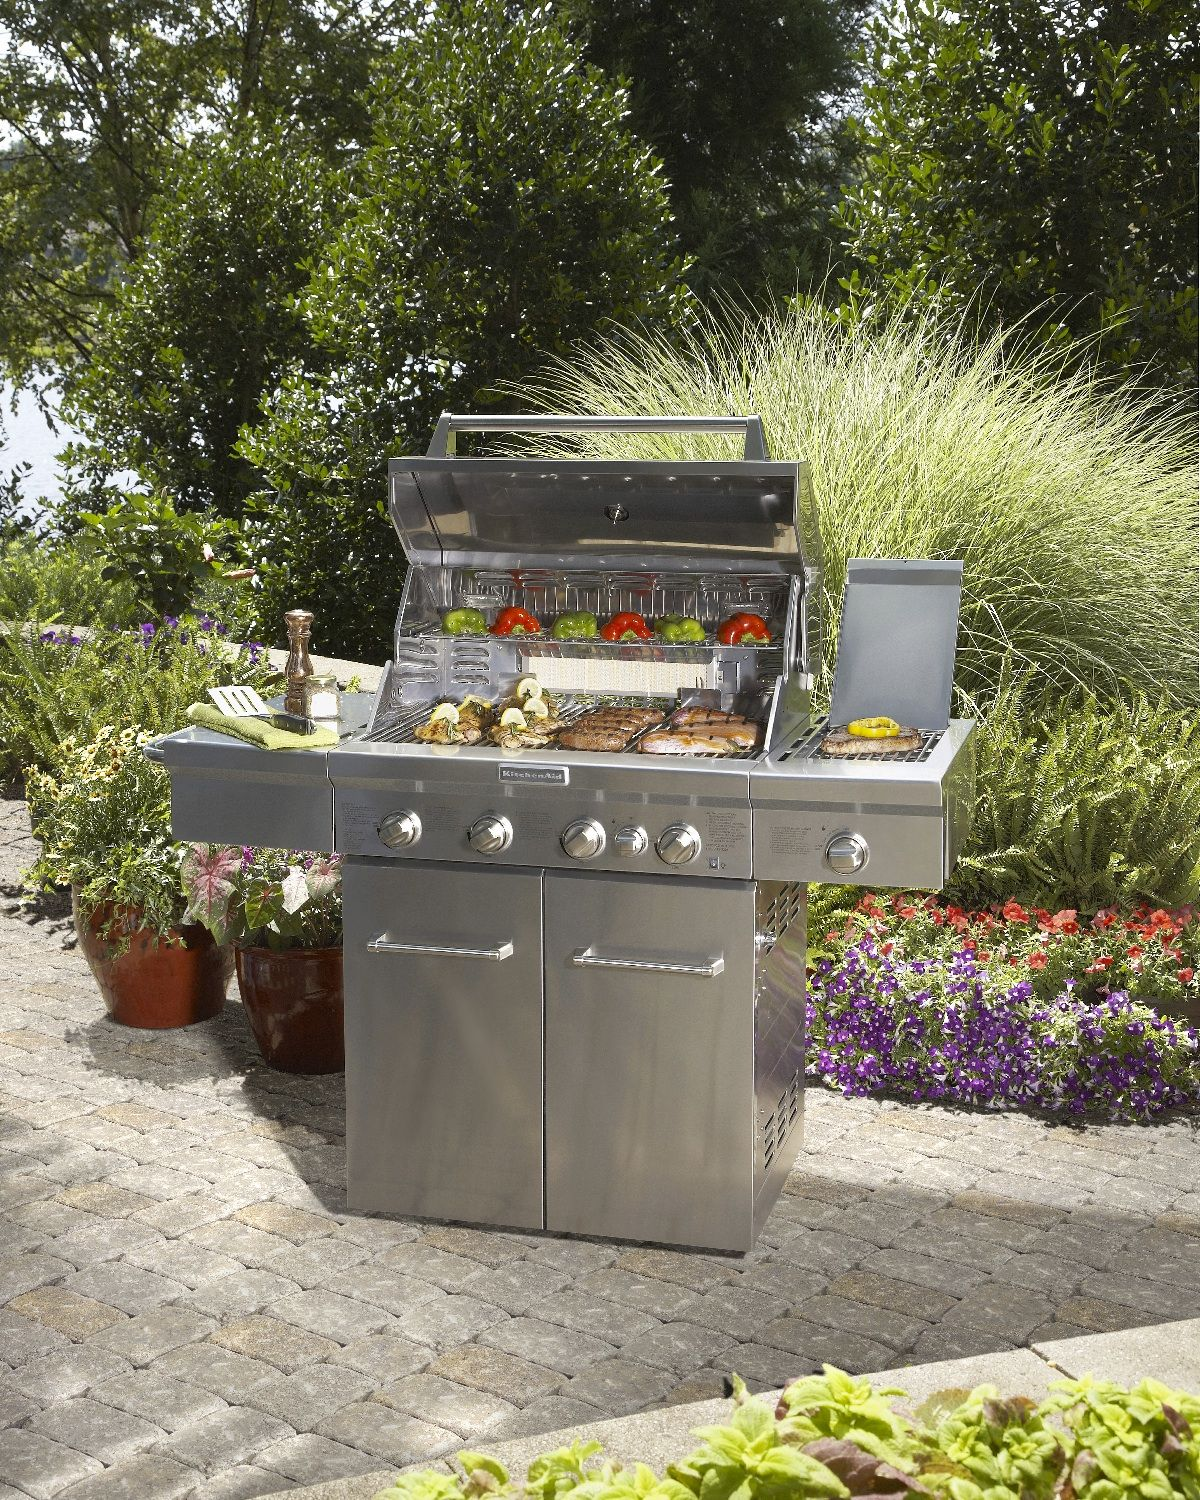 Grill out in style this spring with a KitchenAid 4 burner ...